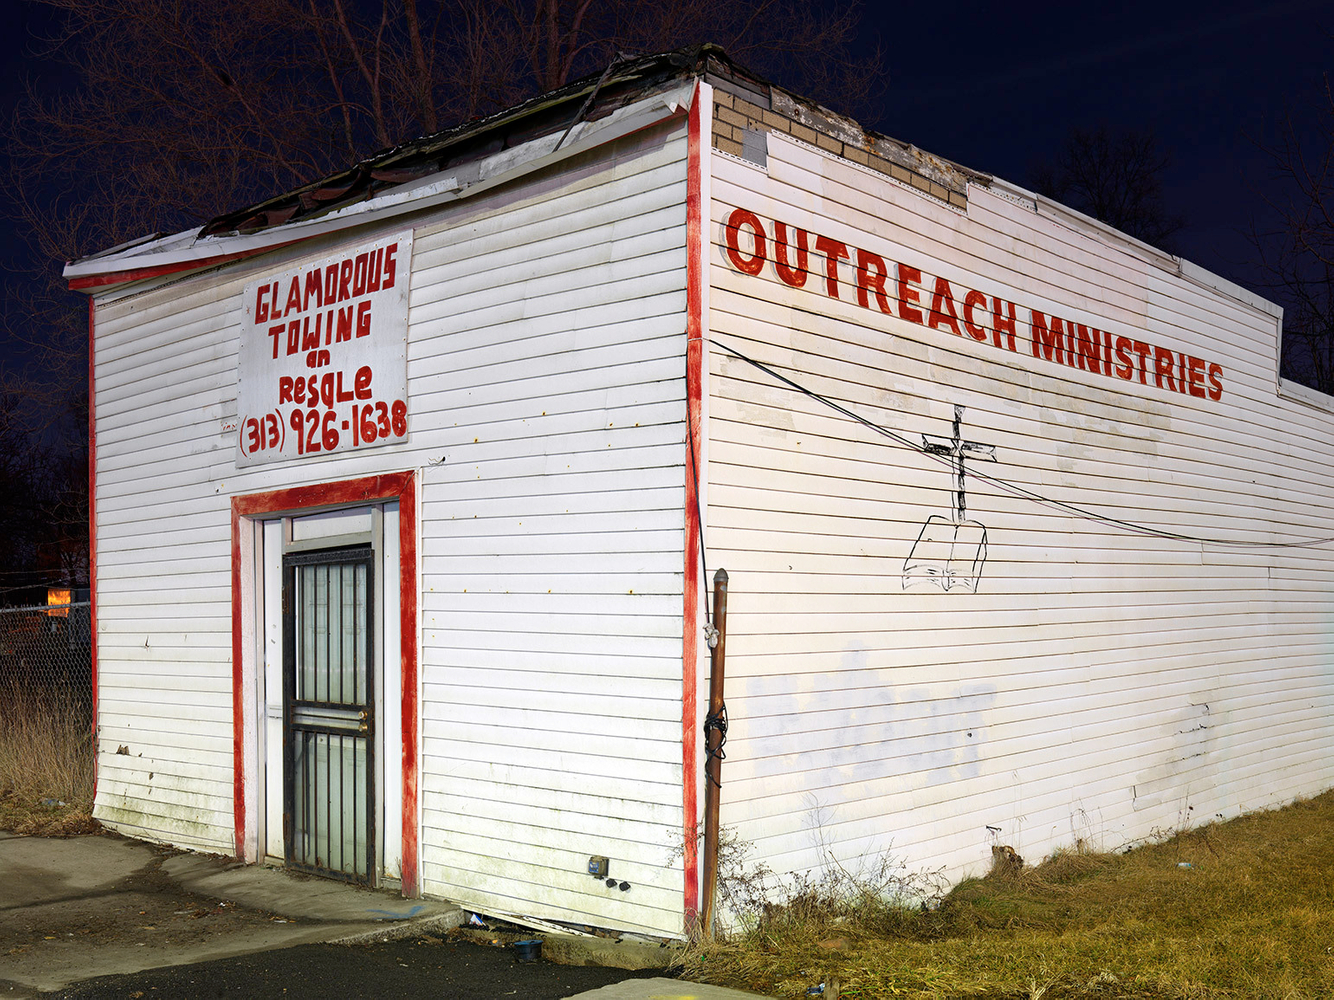 Glamorous Towing an Resale and Outreach Ministries, Brightmoor, Westside, Detroit 2016